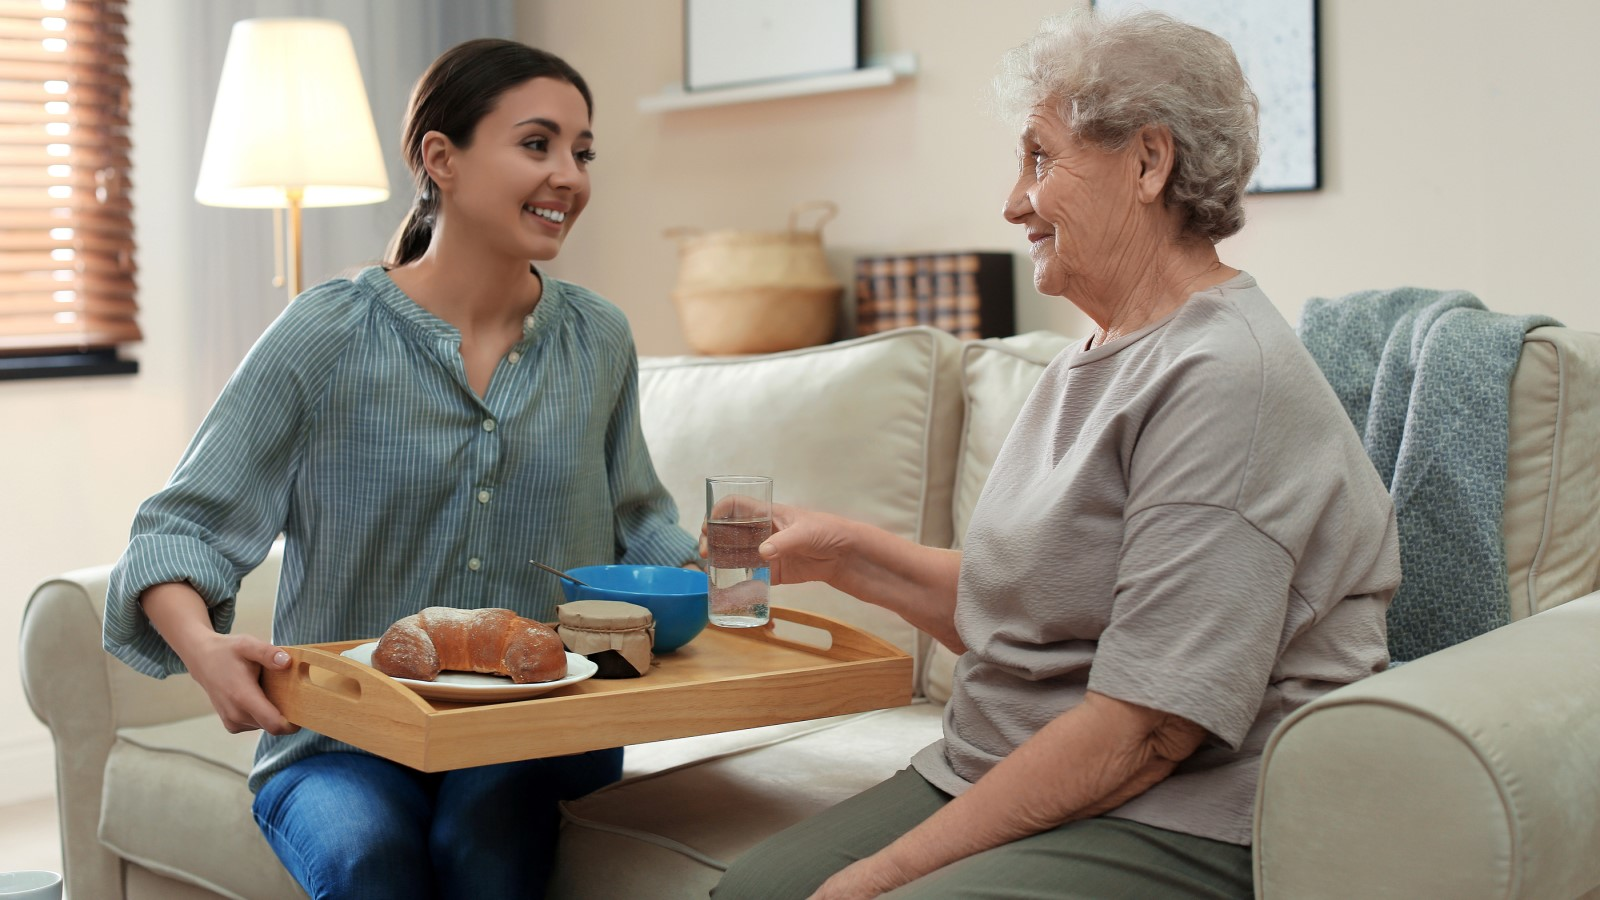 Happy elderly woman getting breakfast from her senior care service provider